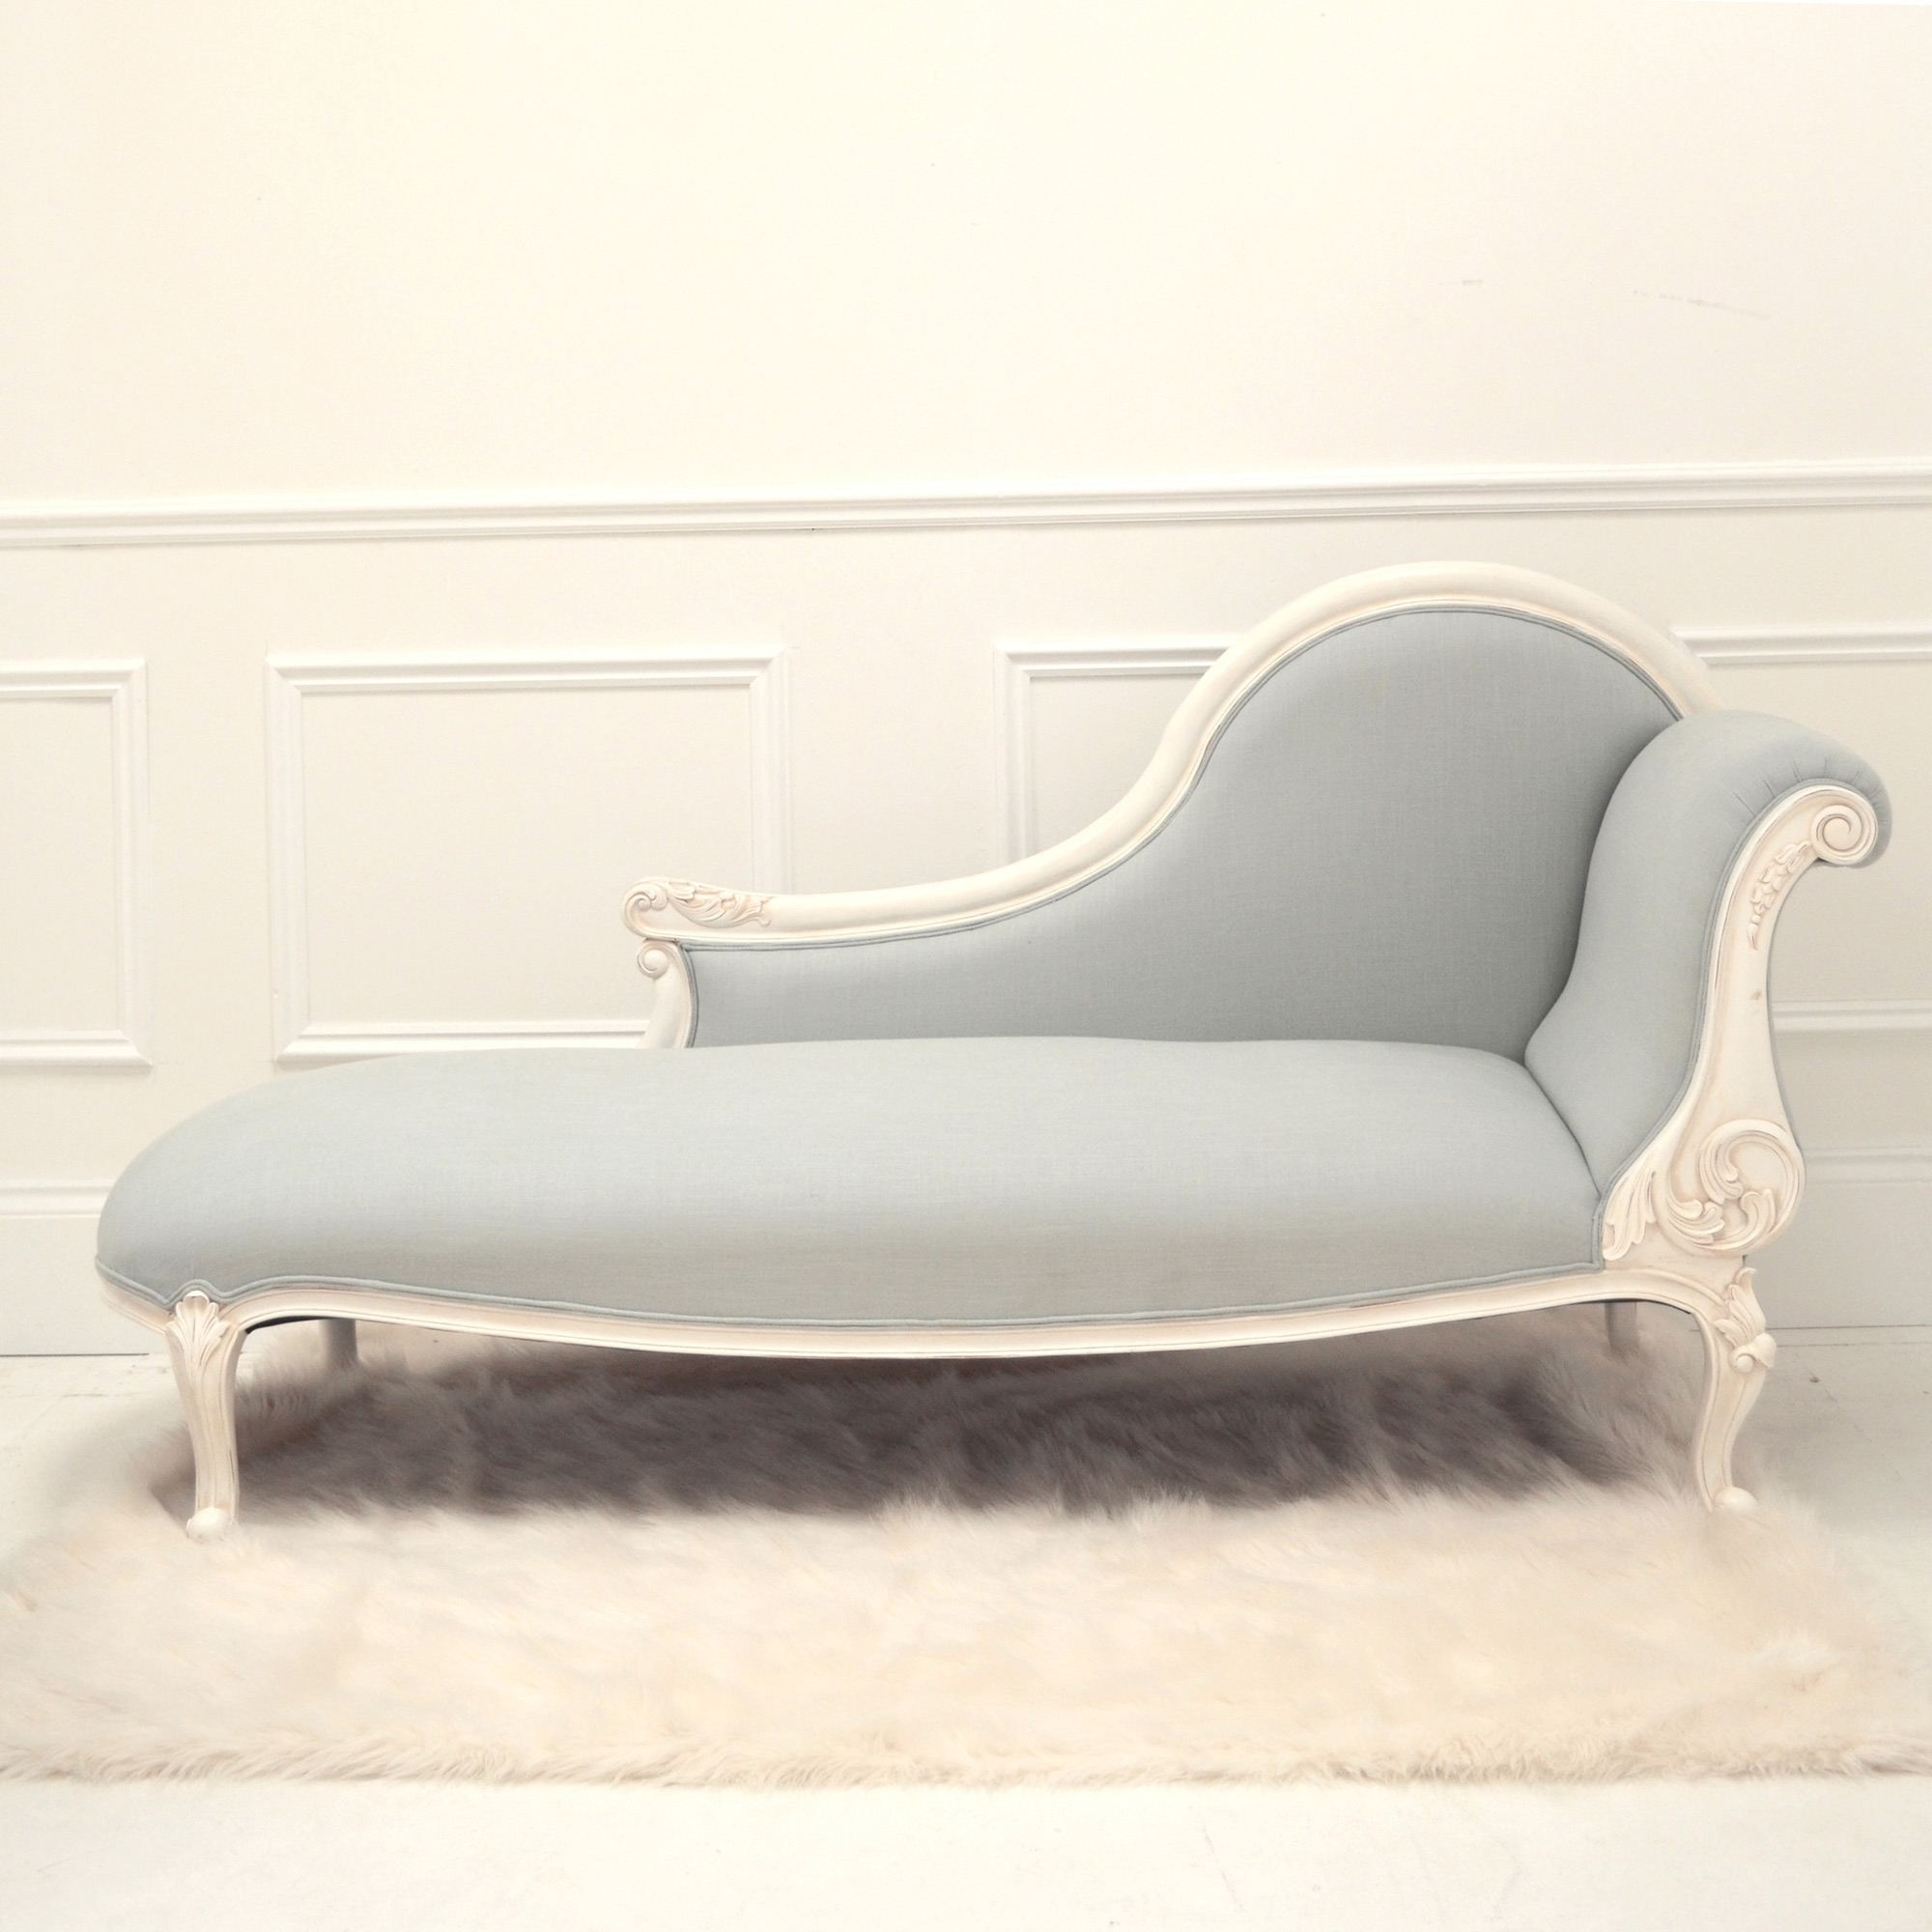 Chaise With Regard To French Country Chaise Lounges (View 9 of 15)